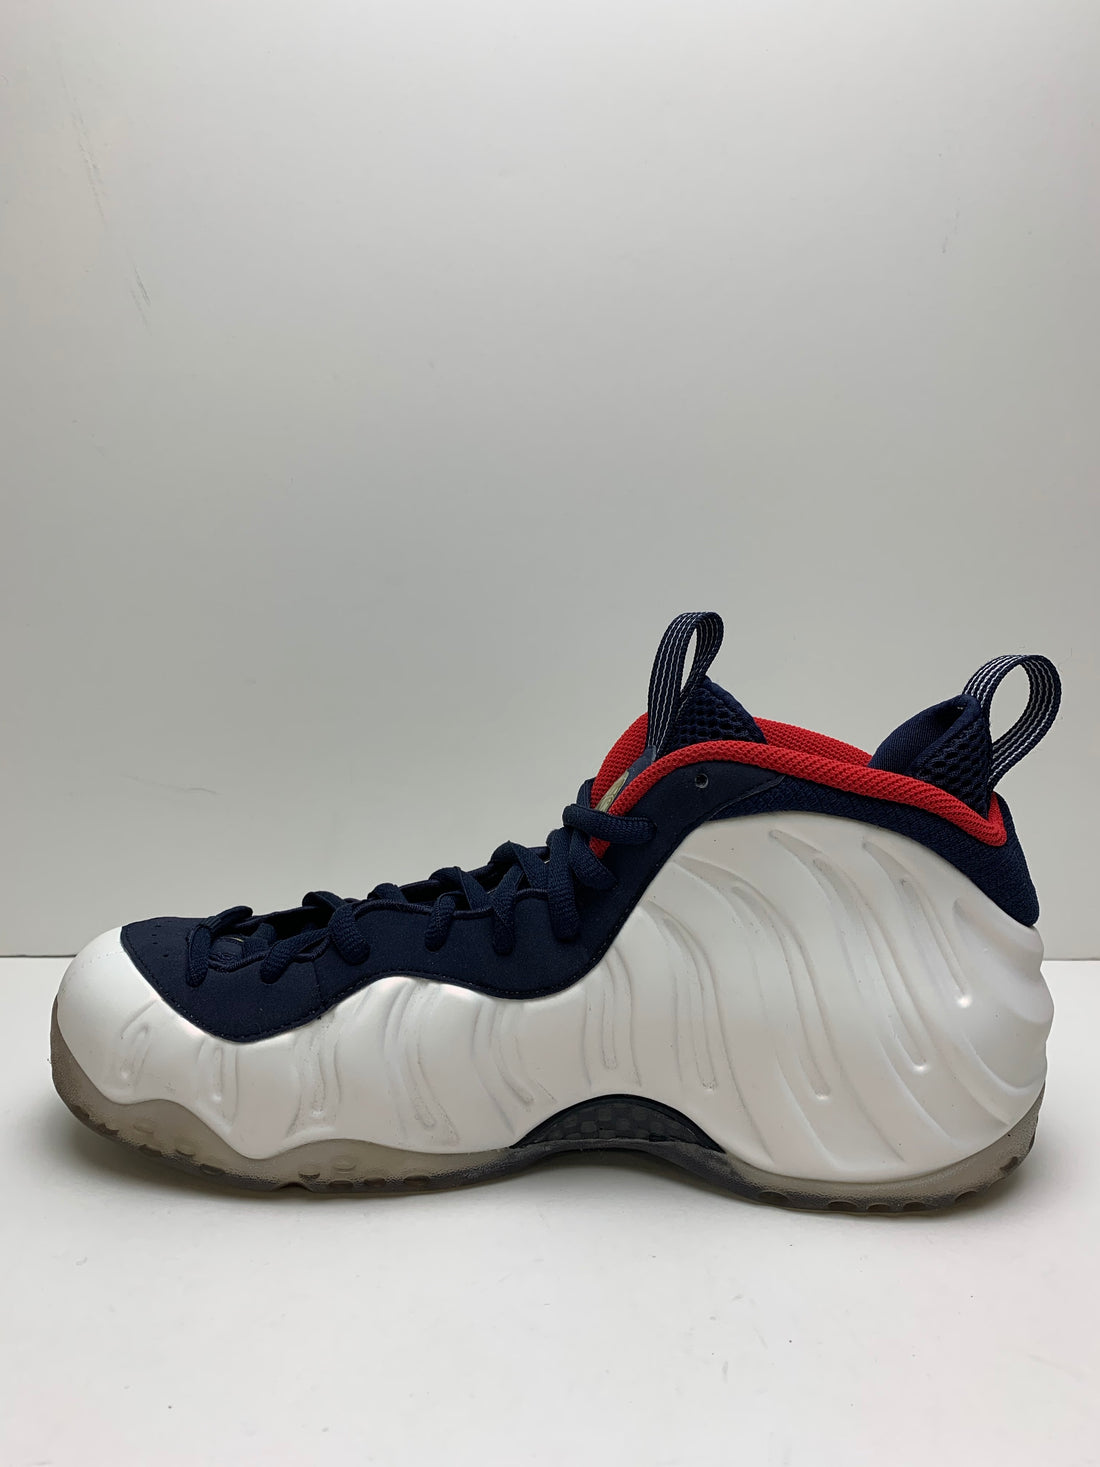 Foamposite One Olympic